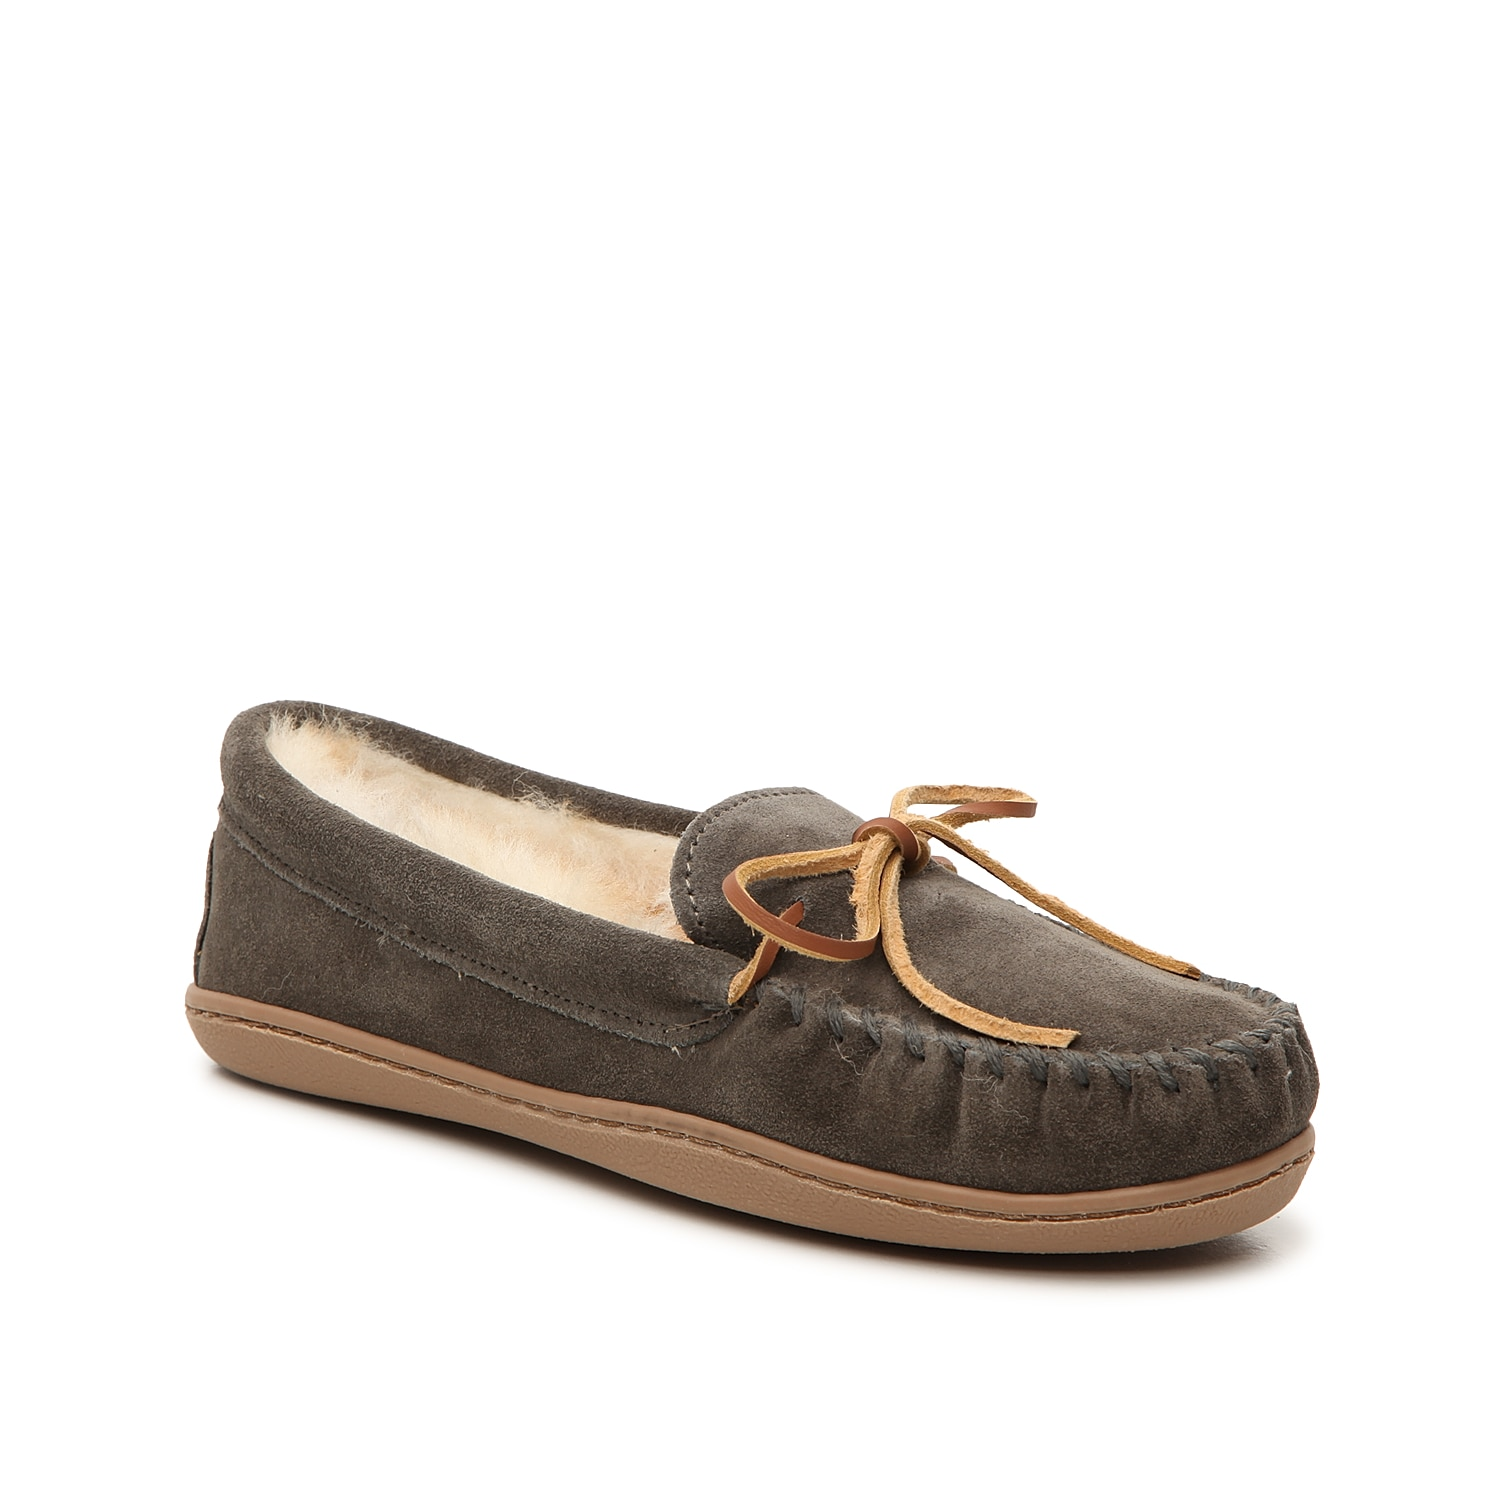 Make your lounge-worthy look extra comfy in the Sheepskin moccasin slipper from Minnetonka. These hard-sole slip-ons feature a soft suede construction and warm sheepskin lining that are sure to become your new go-to.